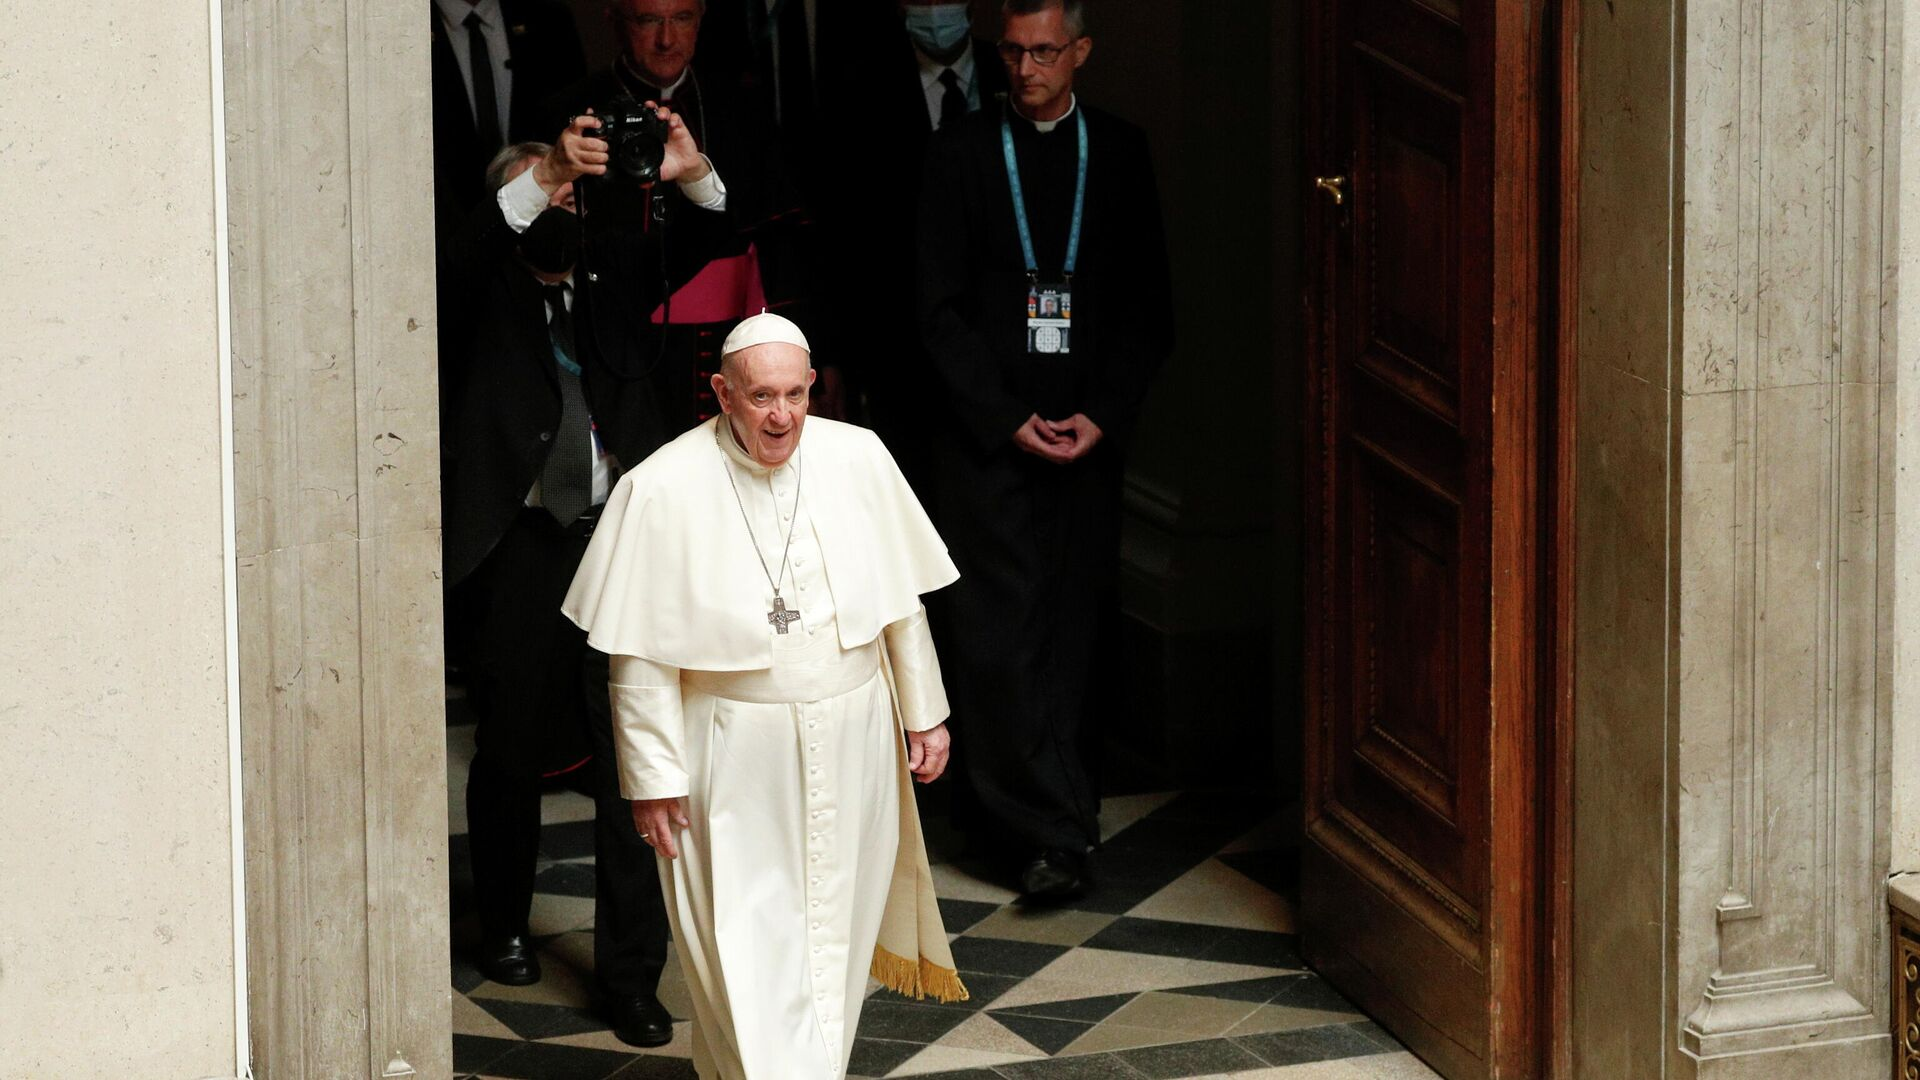 Pope Francis arrives to meet with representatives of the Ecumenical Council of Churches in the Museum of Fine Arts in Budapest, Hungary, September 12, 2021. REUTERS/Remo Casilli - Sputnik International, 1920, 12.09.2021